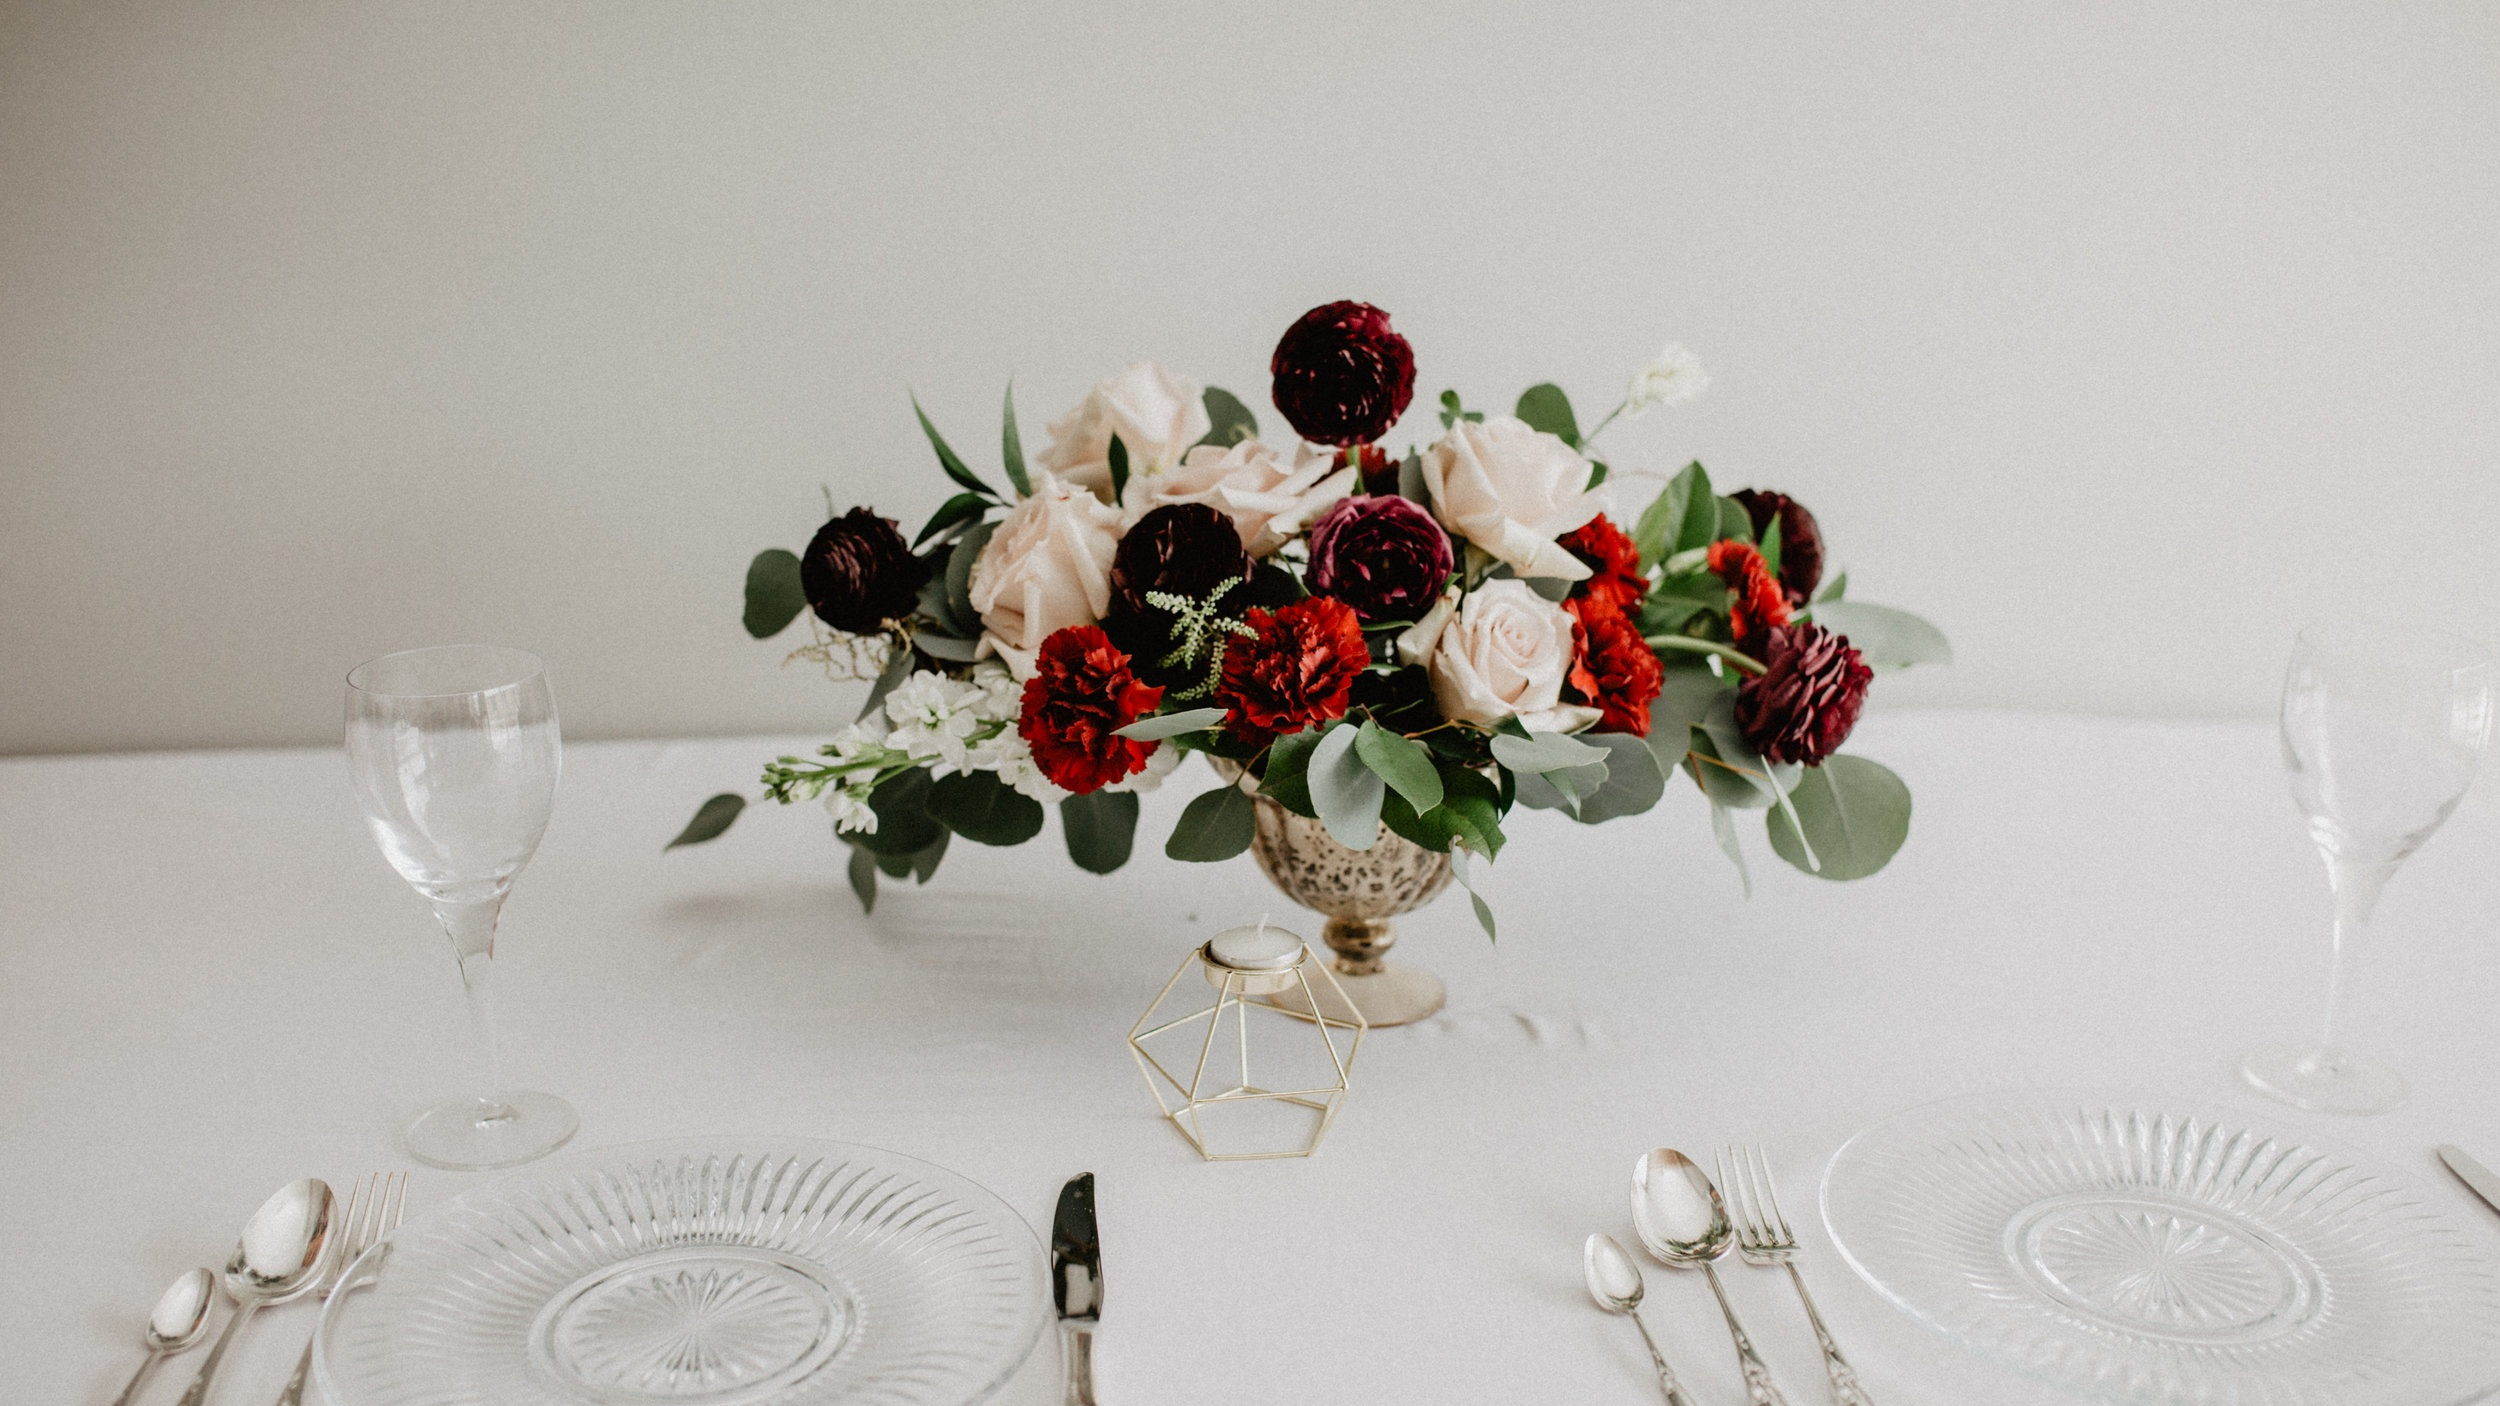 ROMANTIC BURGUNDY FLORAL ARRANGEMENT